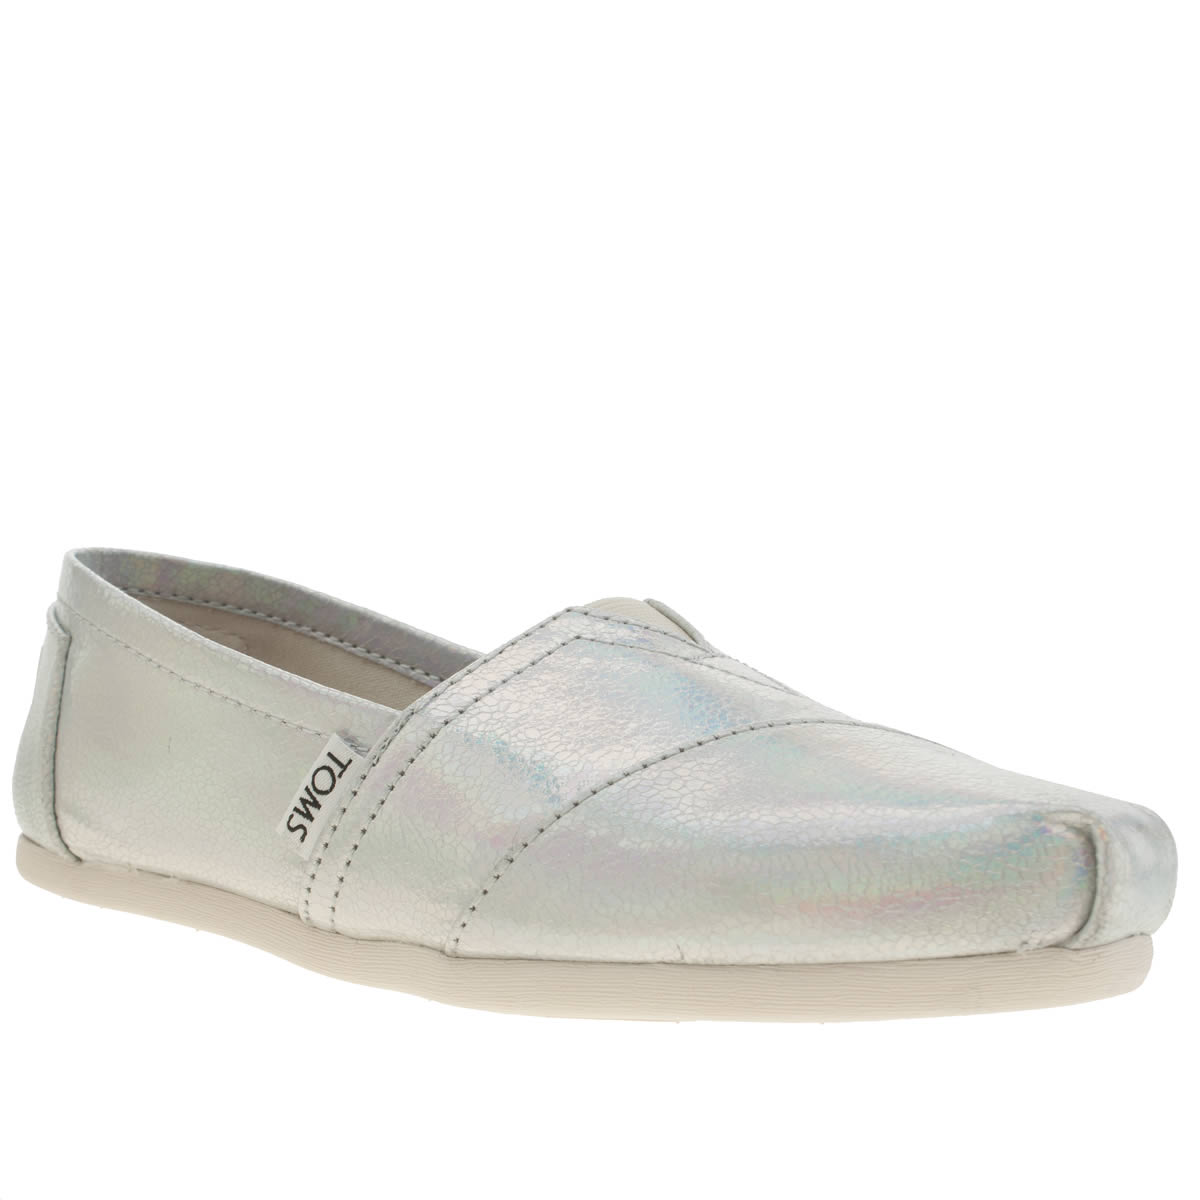 toms silver classic shine metallic flat shoes